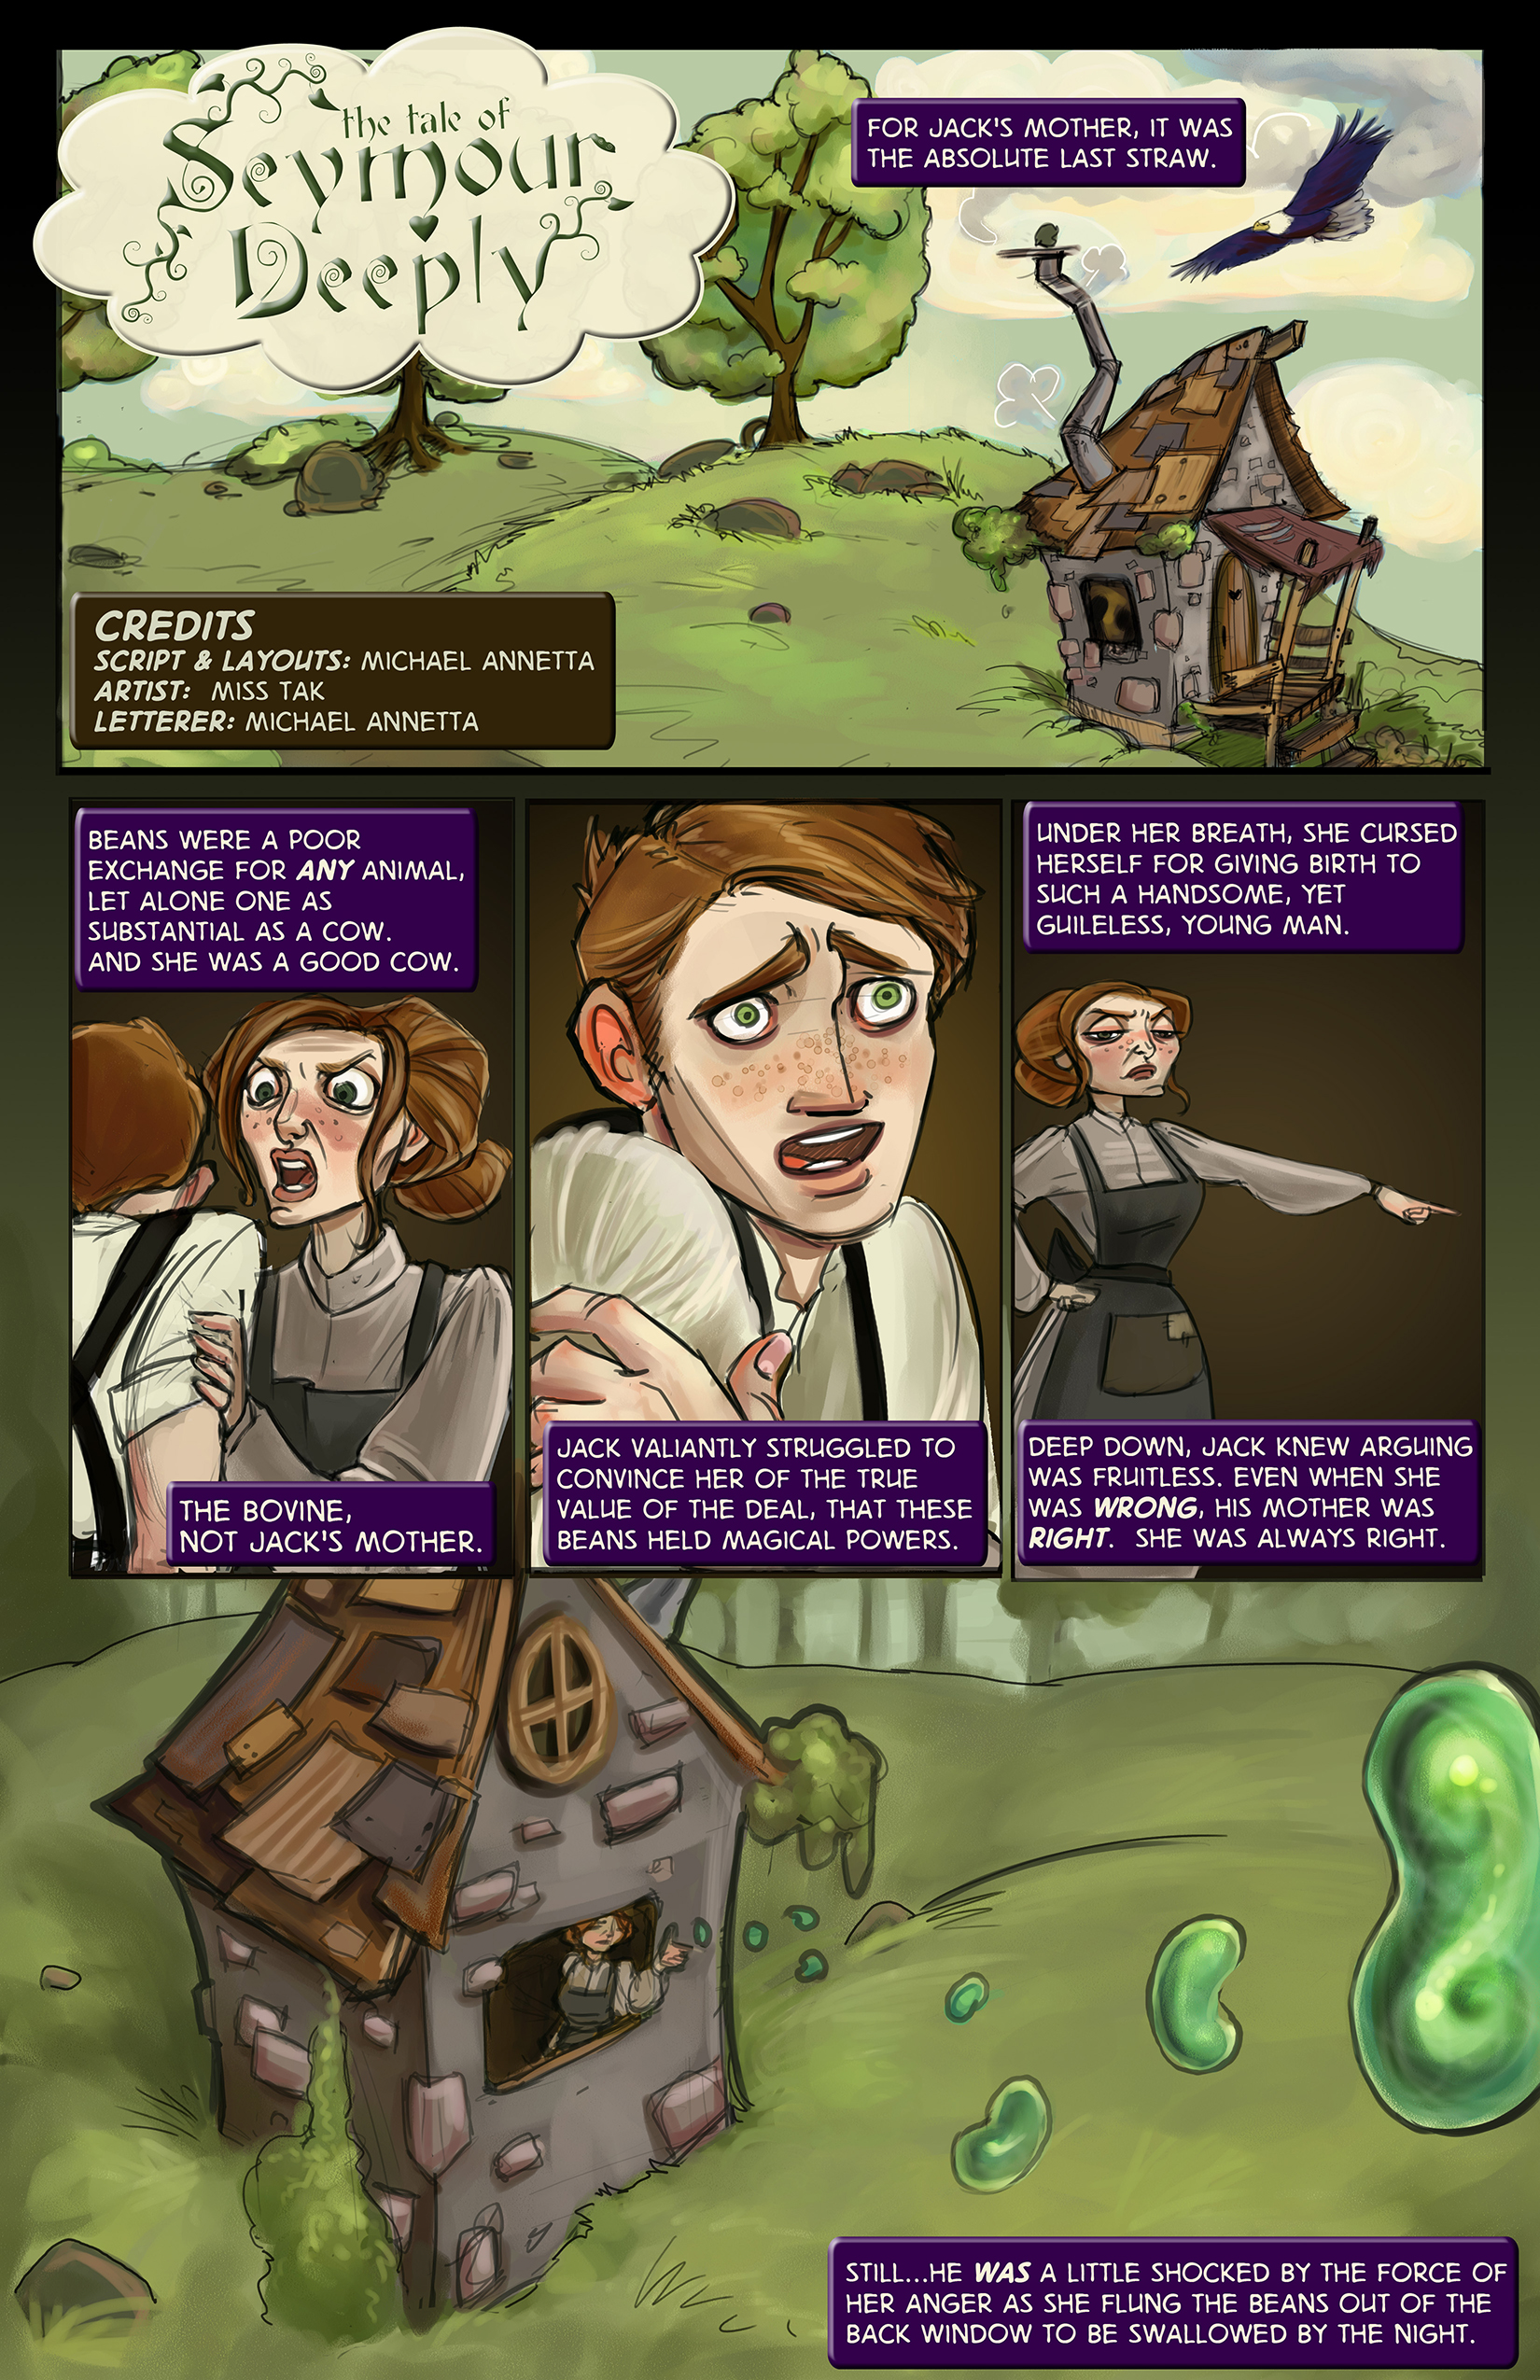 The Tale of Seymour Deeply - Page 1